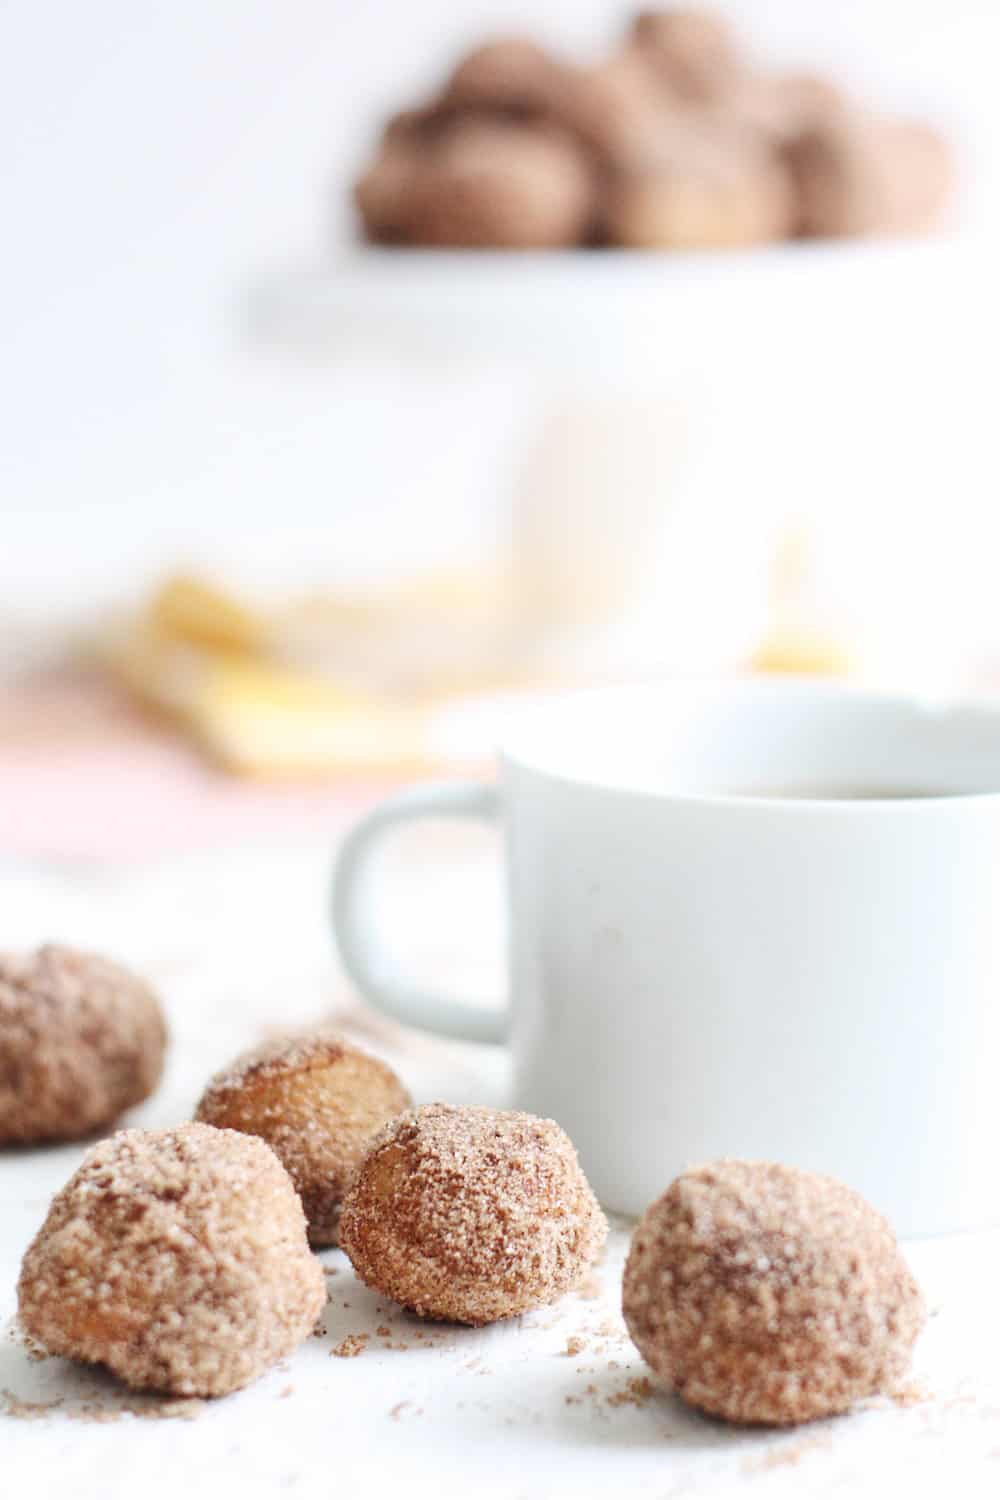 If you are looking for a donut hole recipe to celebrate fall, these baked pumpkin spice munchkins are so delicious! They are really easy to make, too.